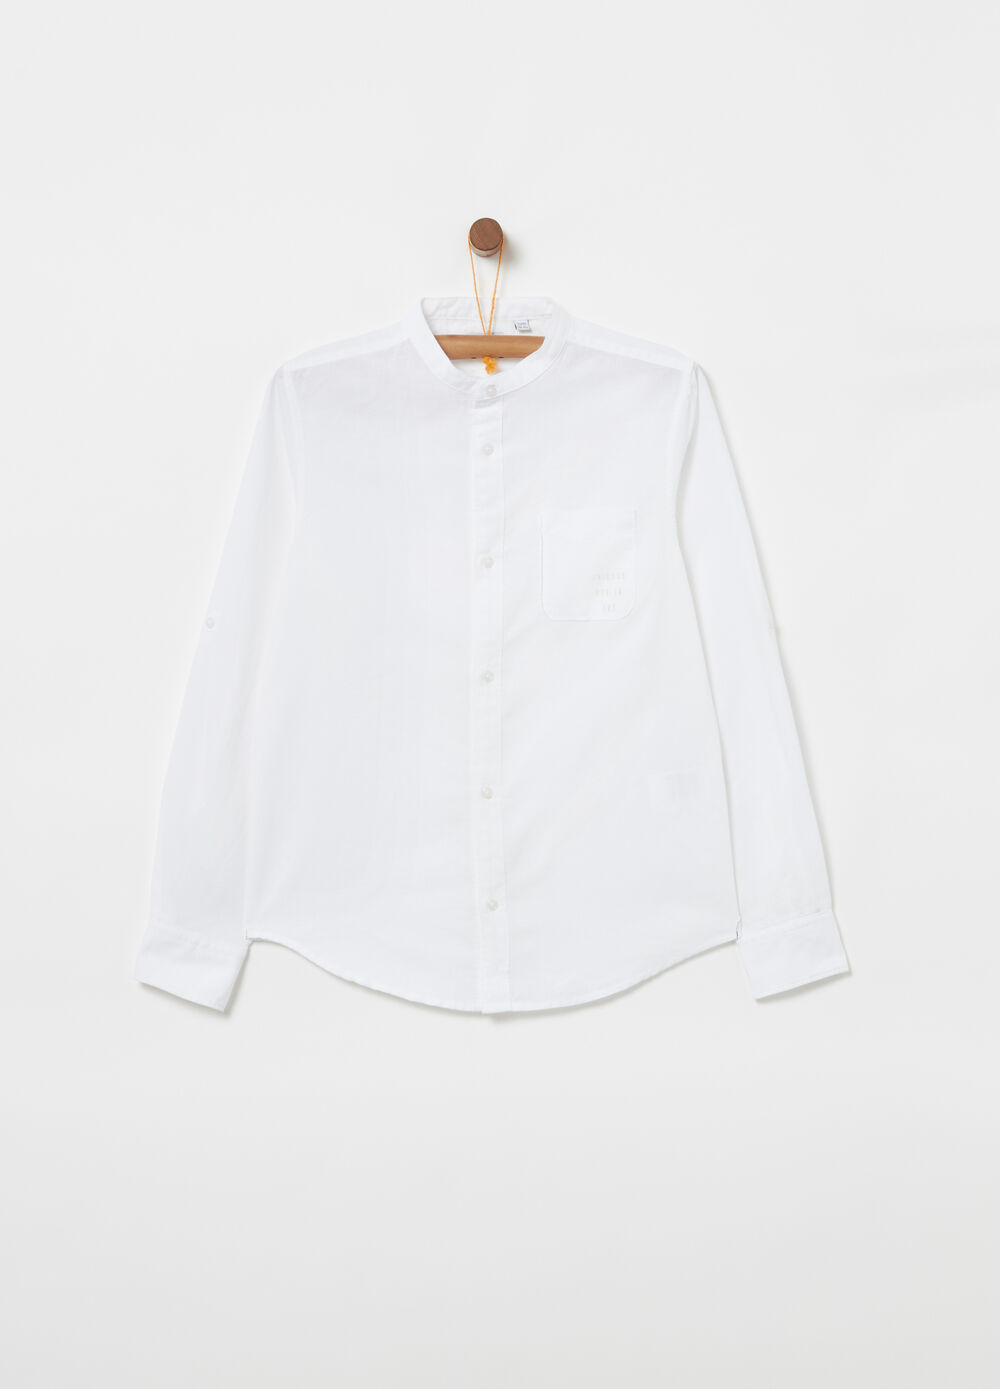 Shirt with Mandarin collar and printed pocket